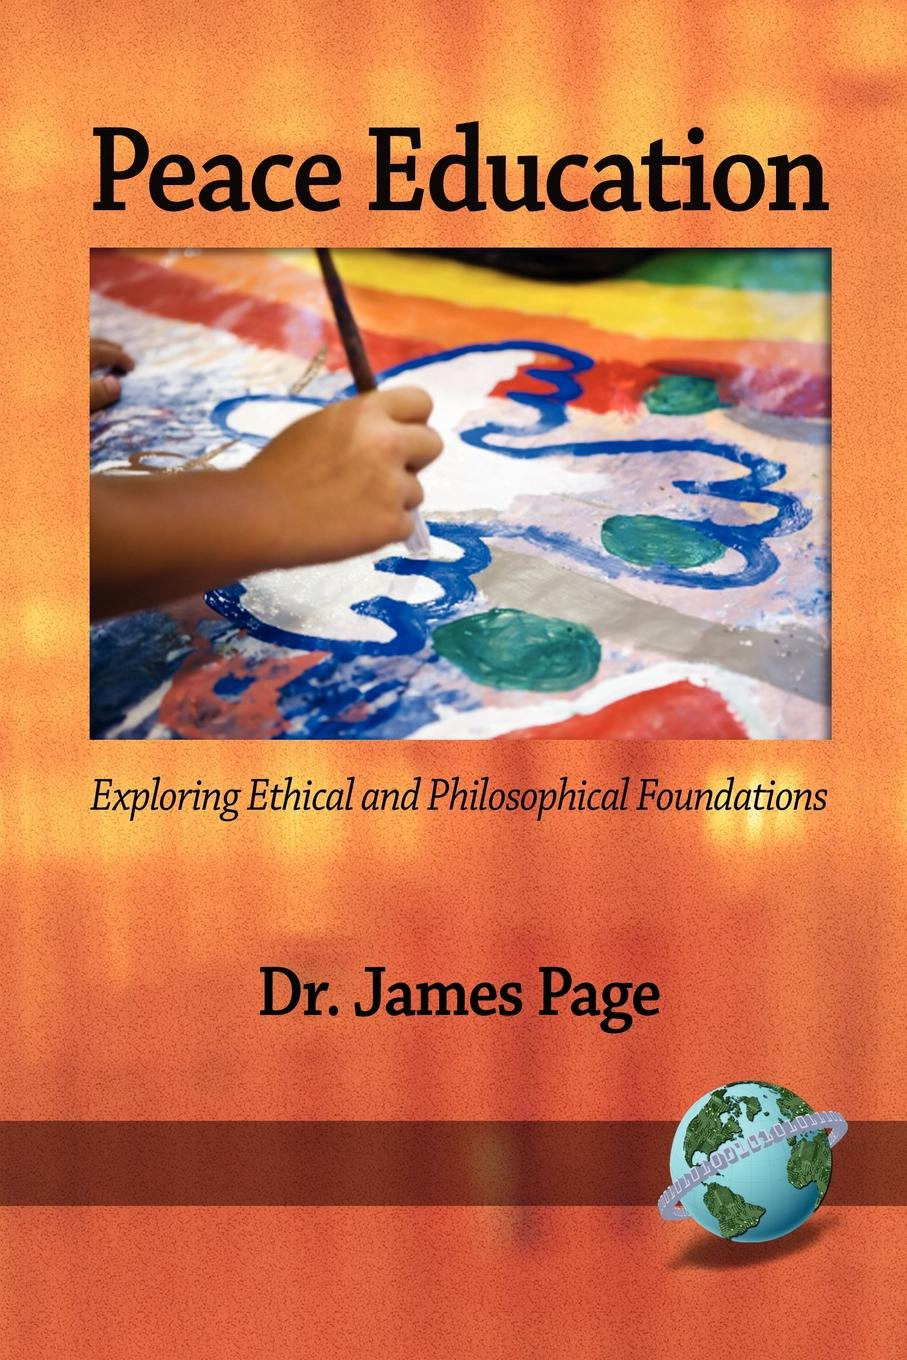 James Ma Page Peace Education. Exploring Ethical and Philosophical Foundations (PB) an interpretive analysis of selected peace activists